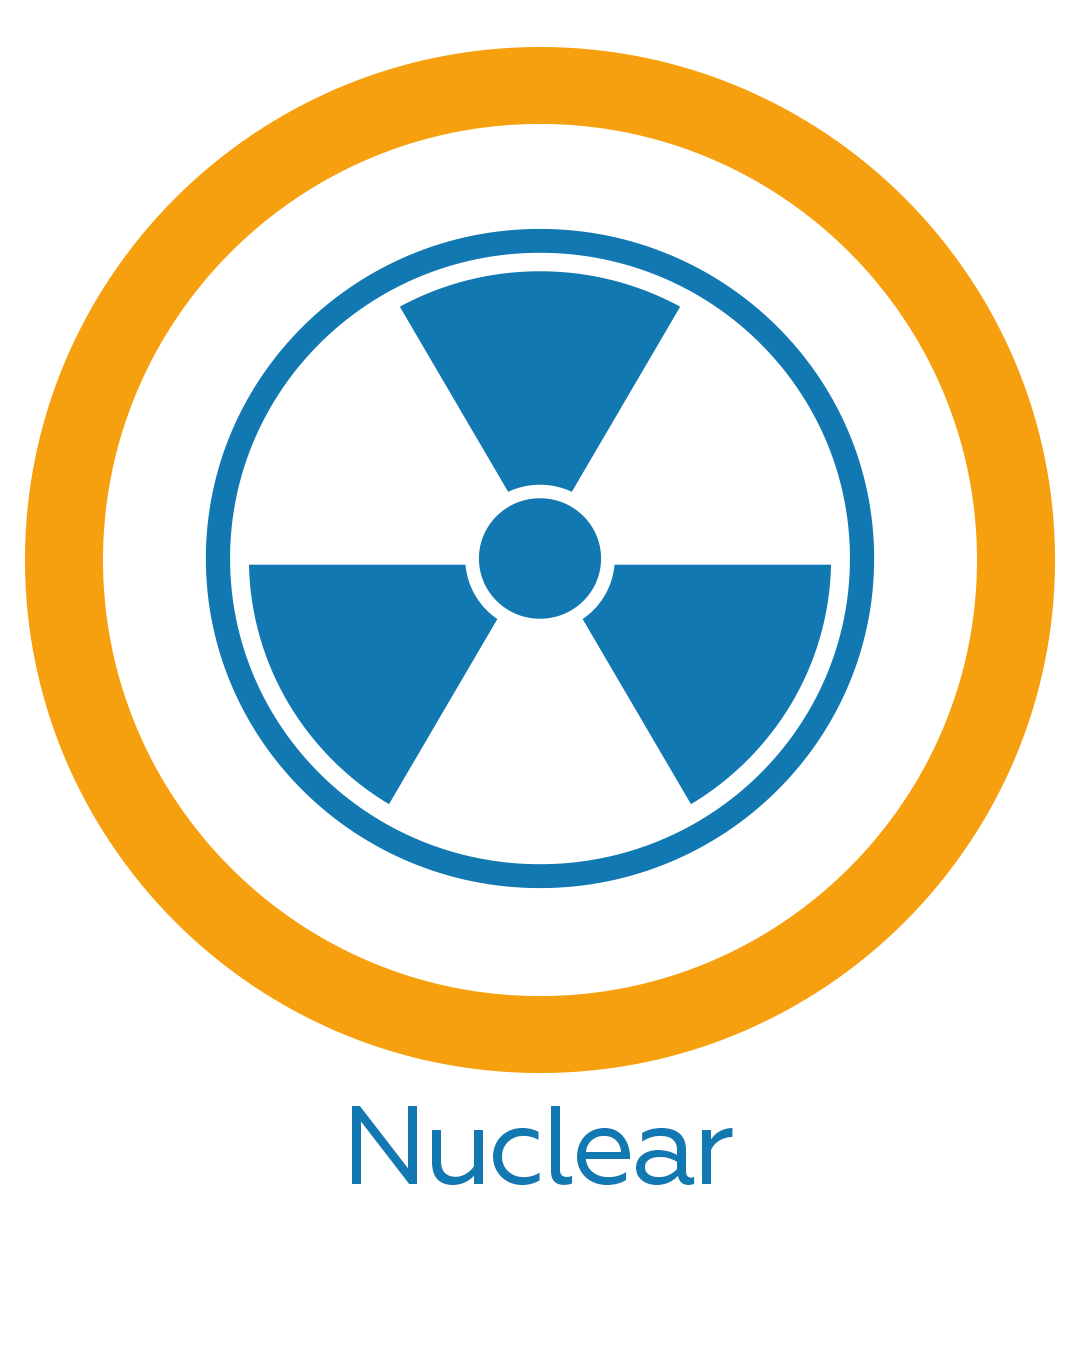 Hire nuclear energy engineers